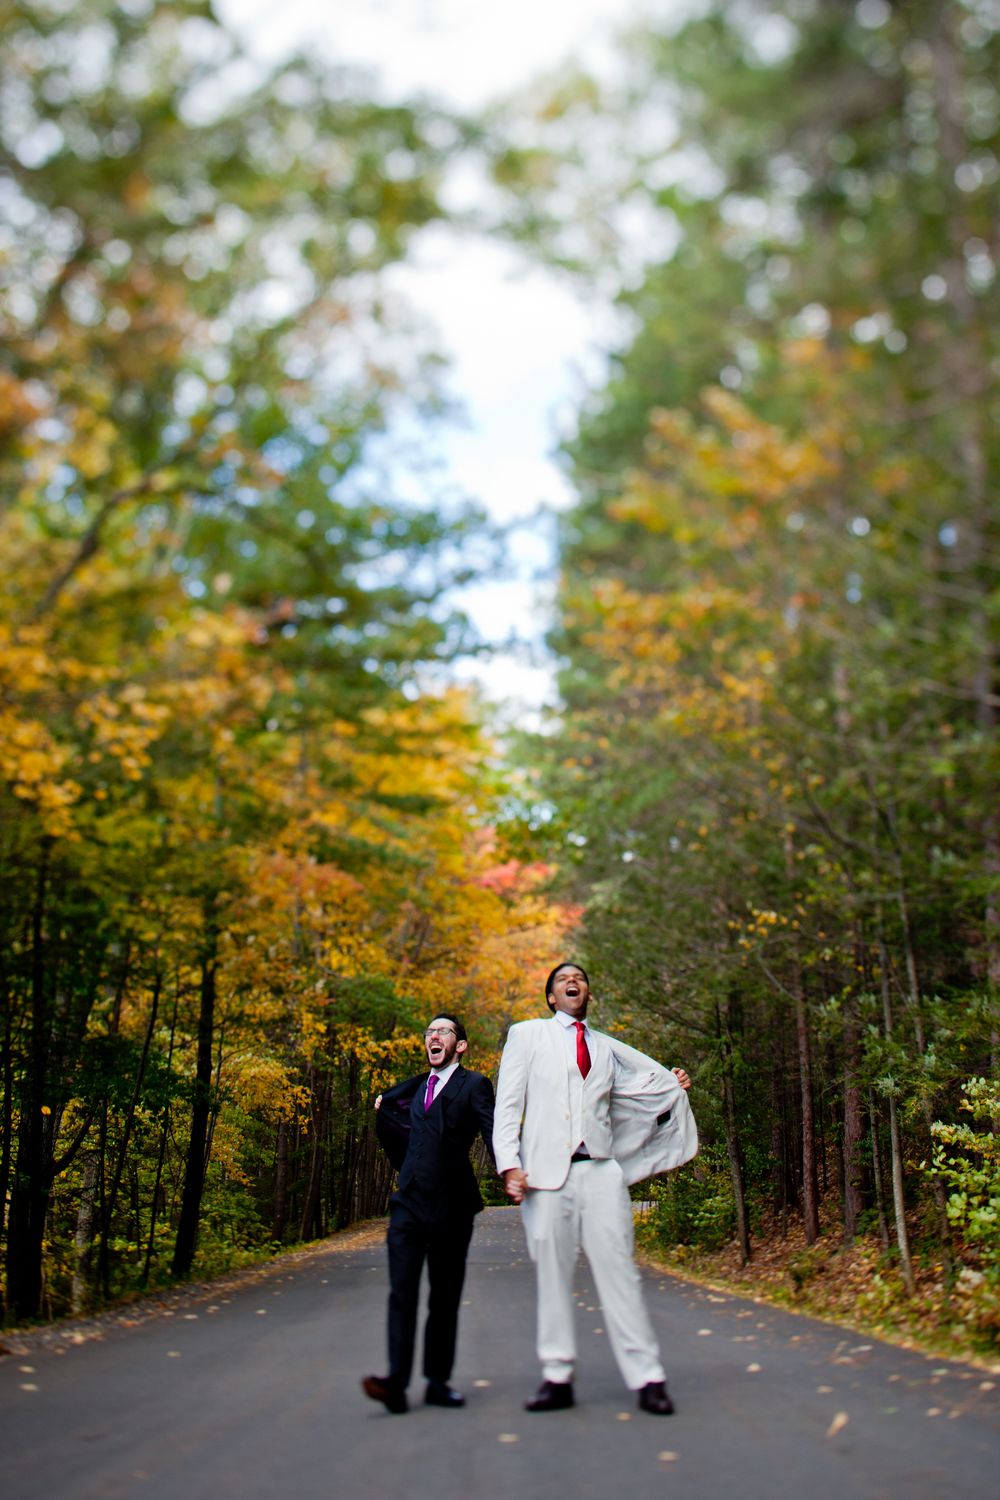 045_CarlyGaebe_SteadfastStudio_WeddingPhotography_Fall_Autumn_Foliage_UpstateNewYork_Gay_Biracial_OnteoraMountainHouse_HudsonValley_Grooms_TiltShift_Rustic.jpg